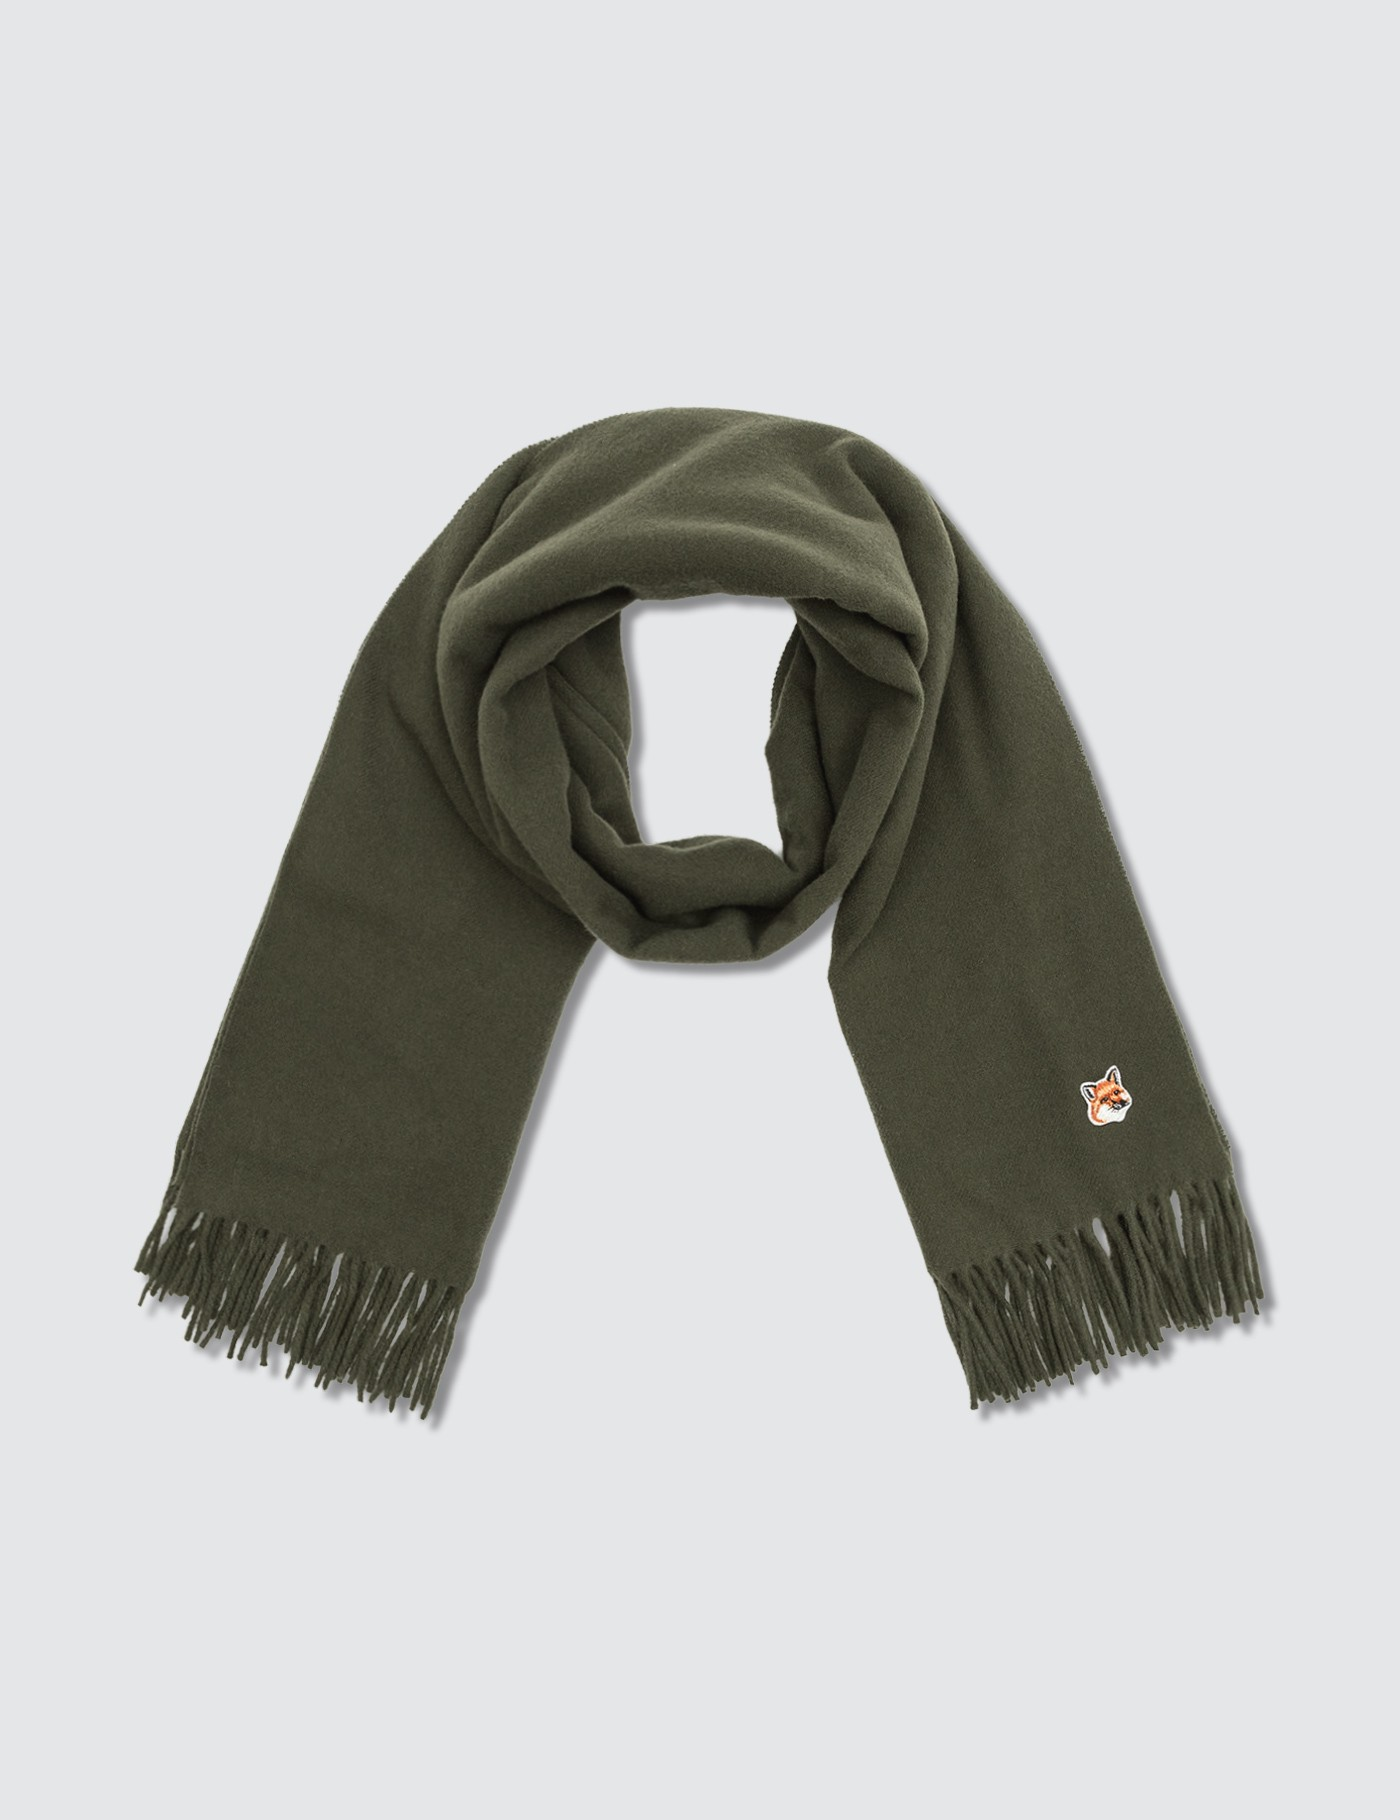 MAISON KITSUNE Small Fox Head Wool Scarf